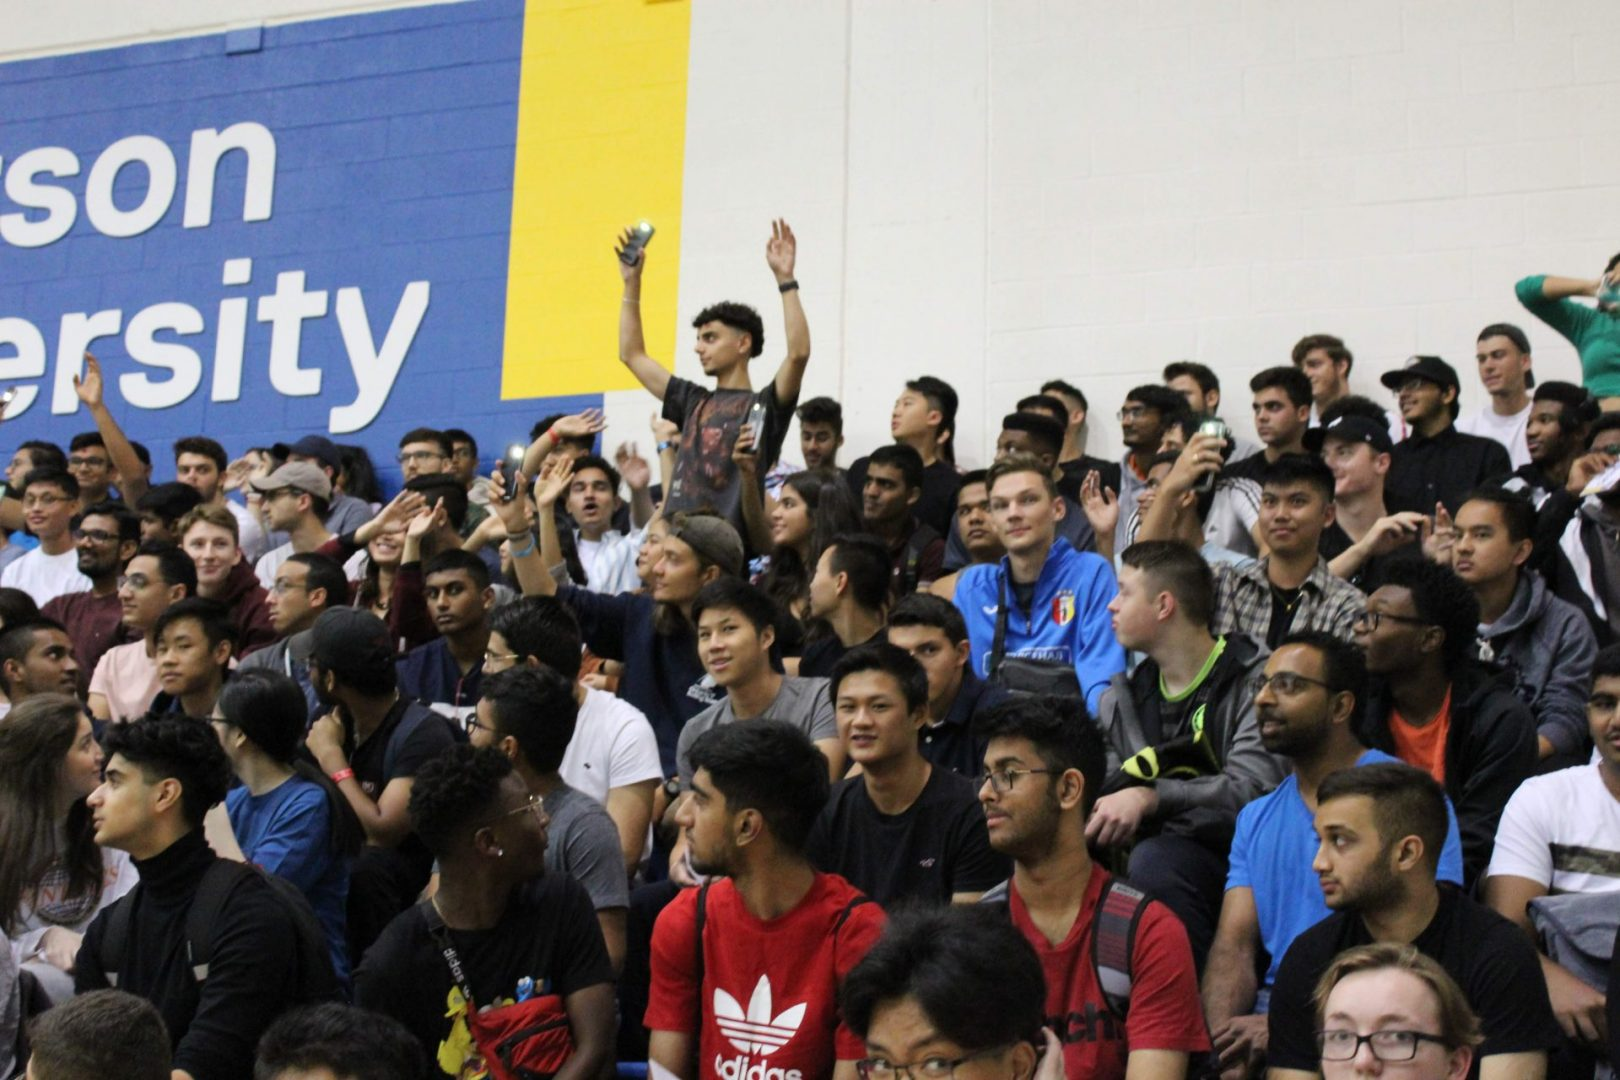 Group of students sitting while one student stands with hands in air